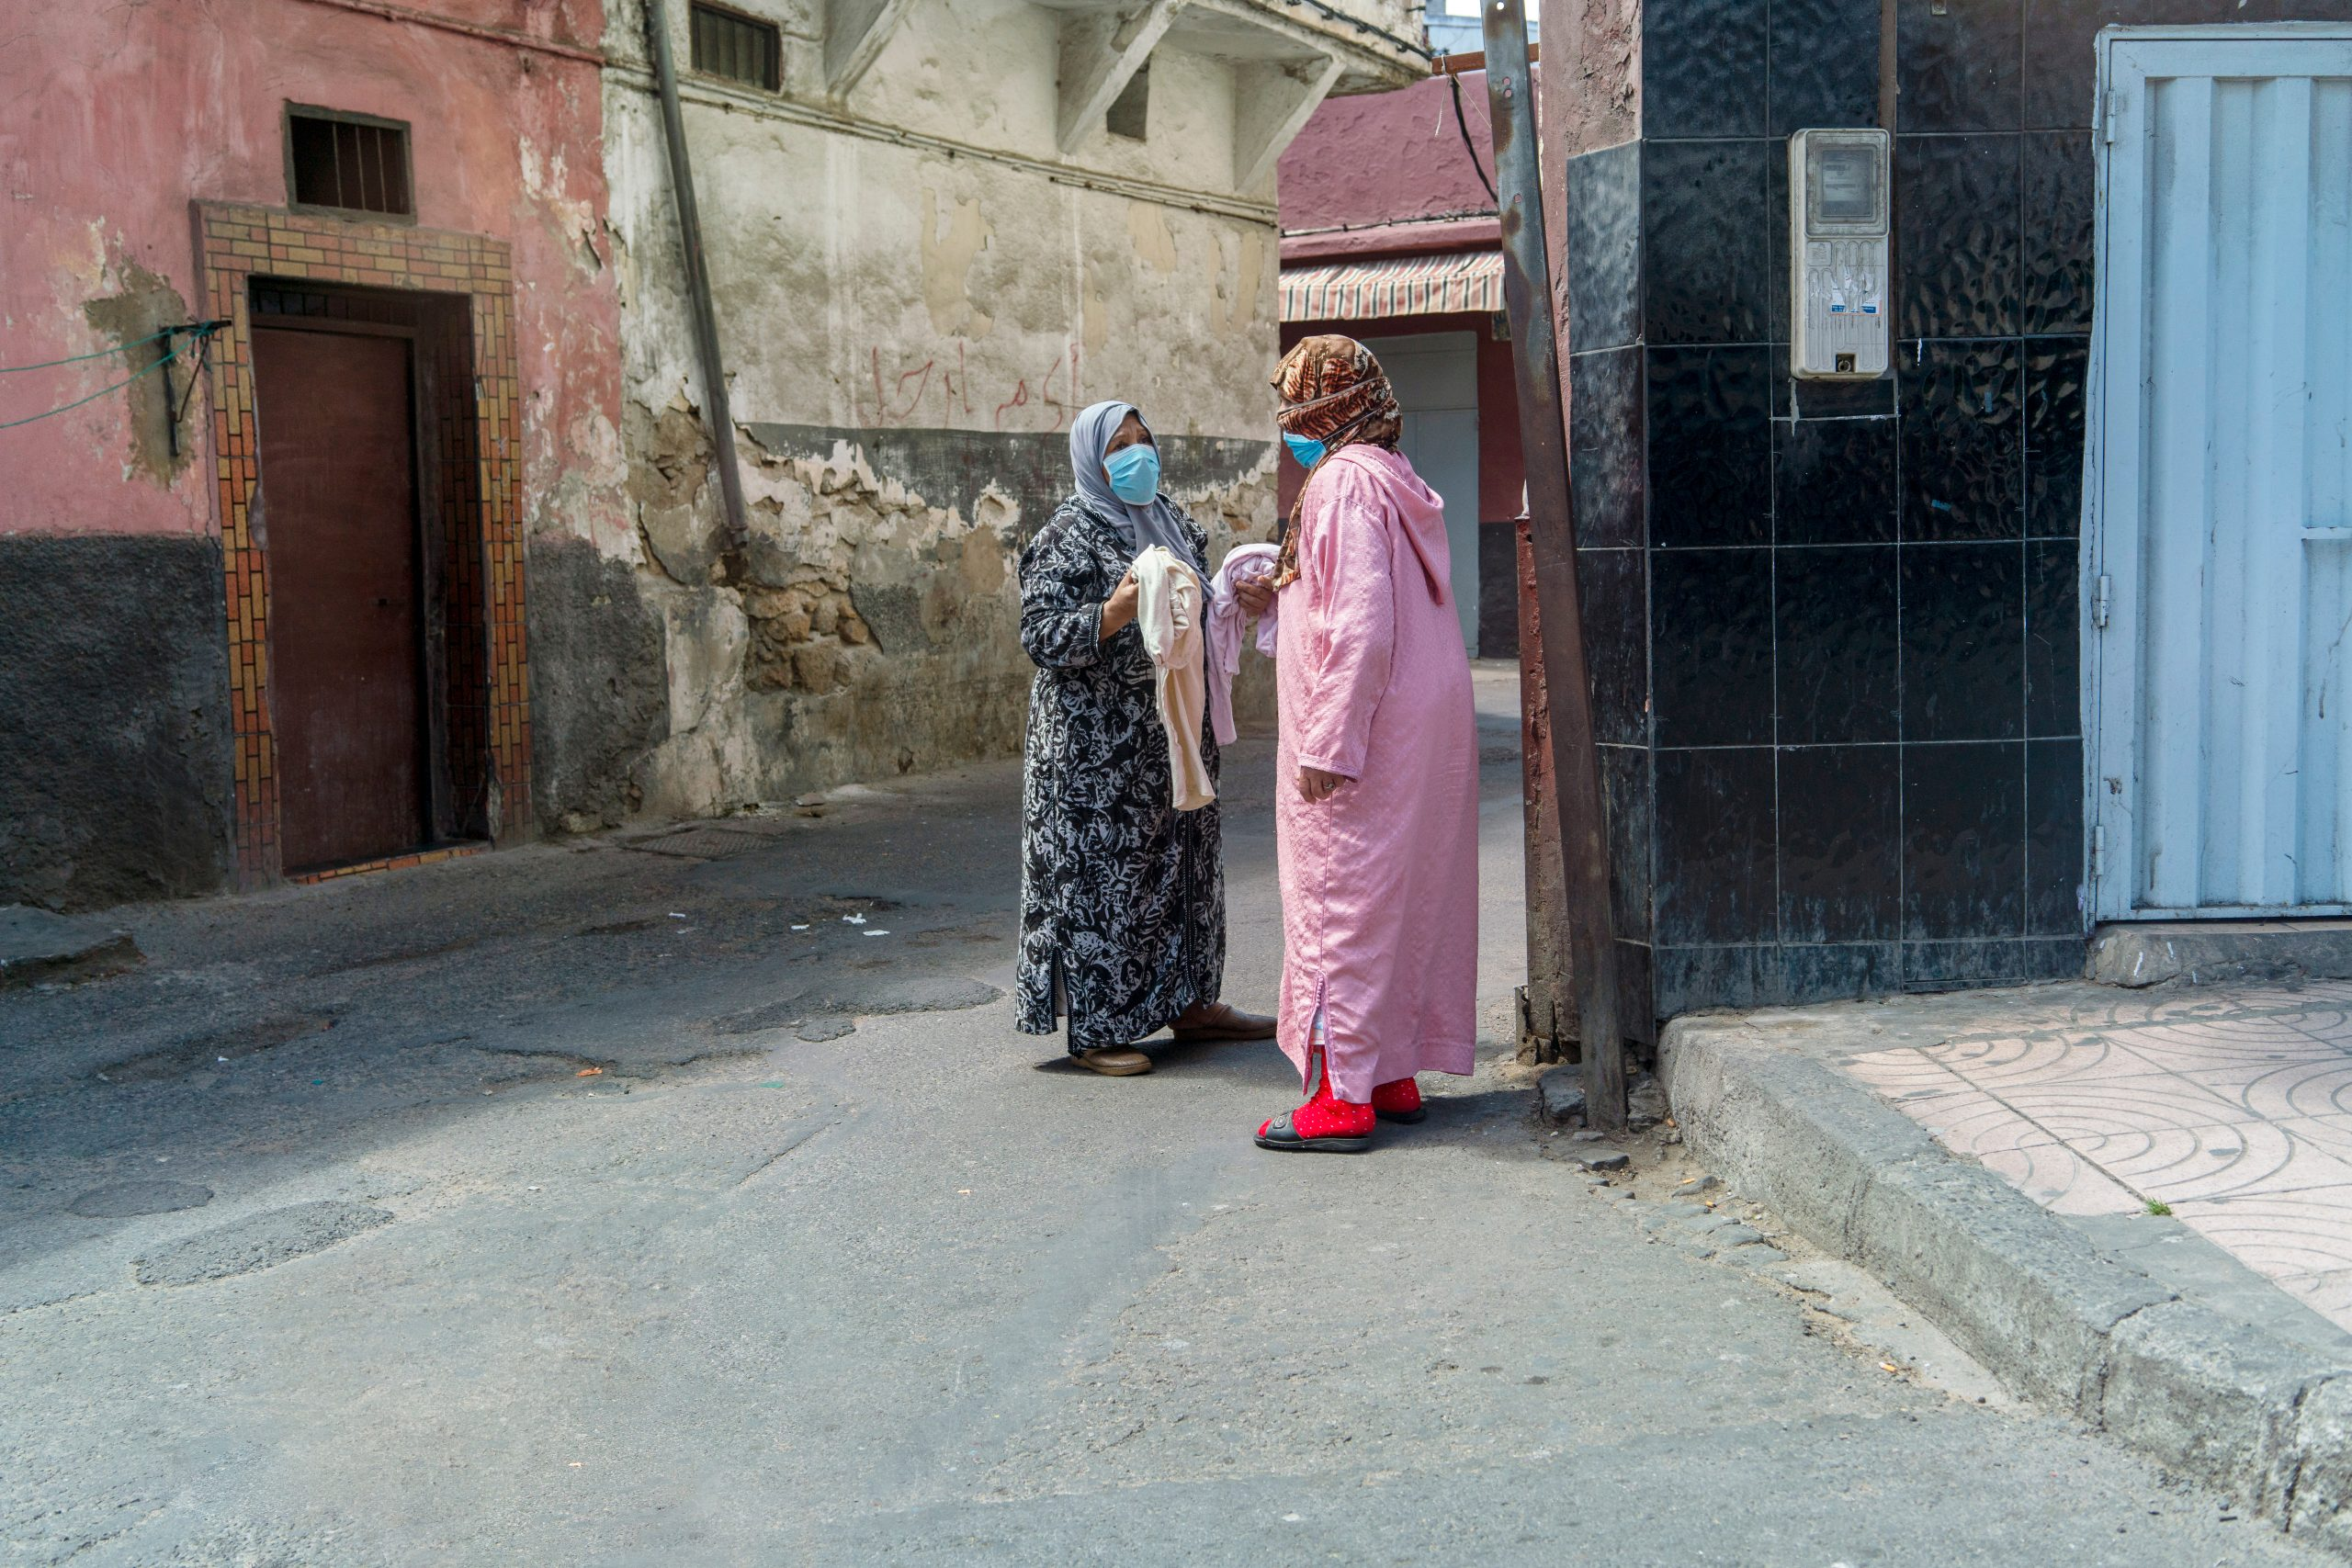 Women in face masks chat in the street in Casablanca.